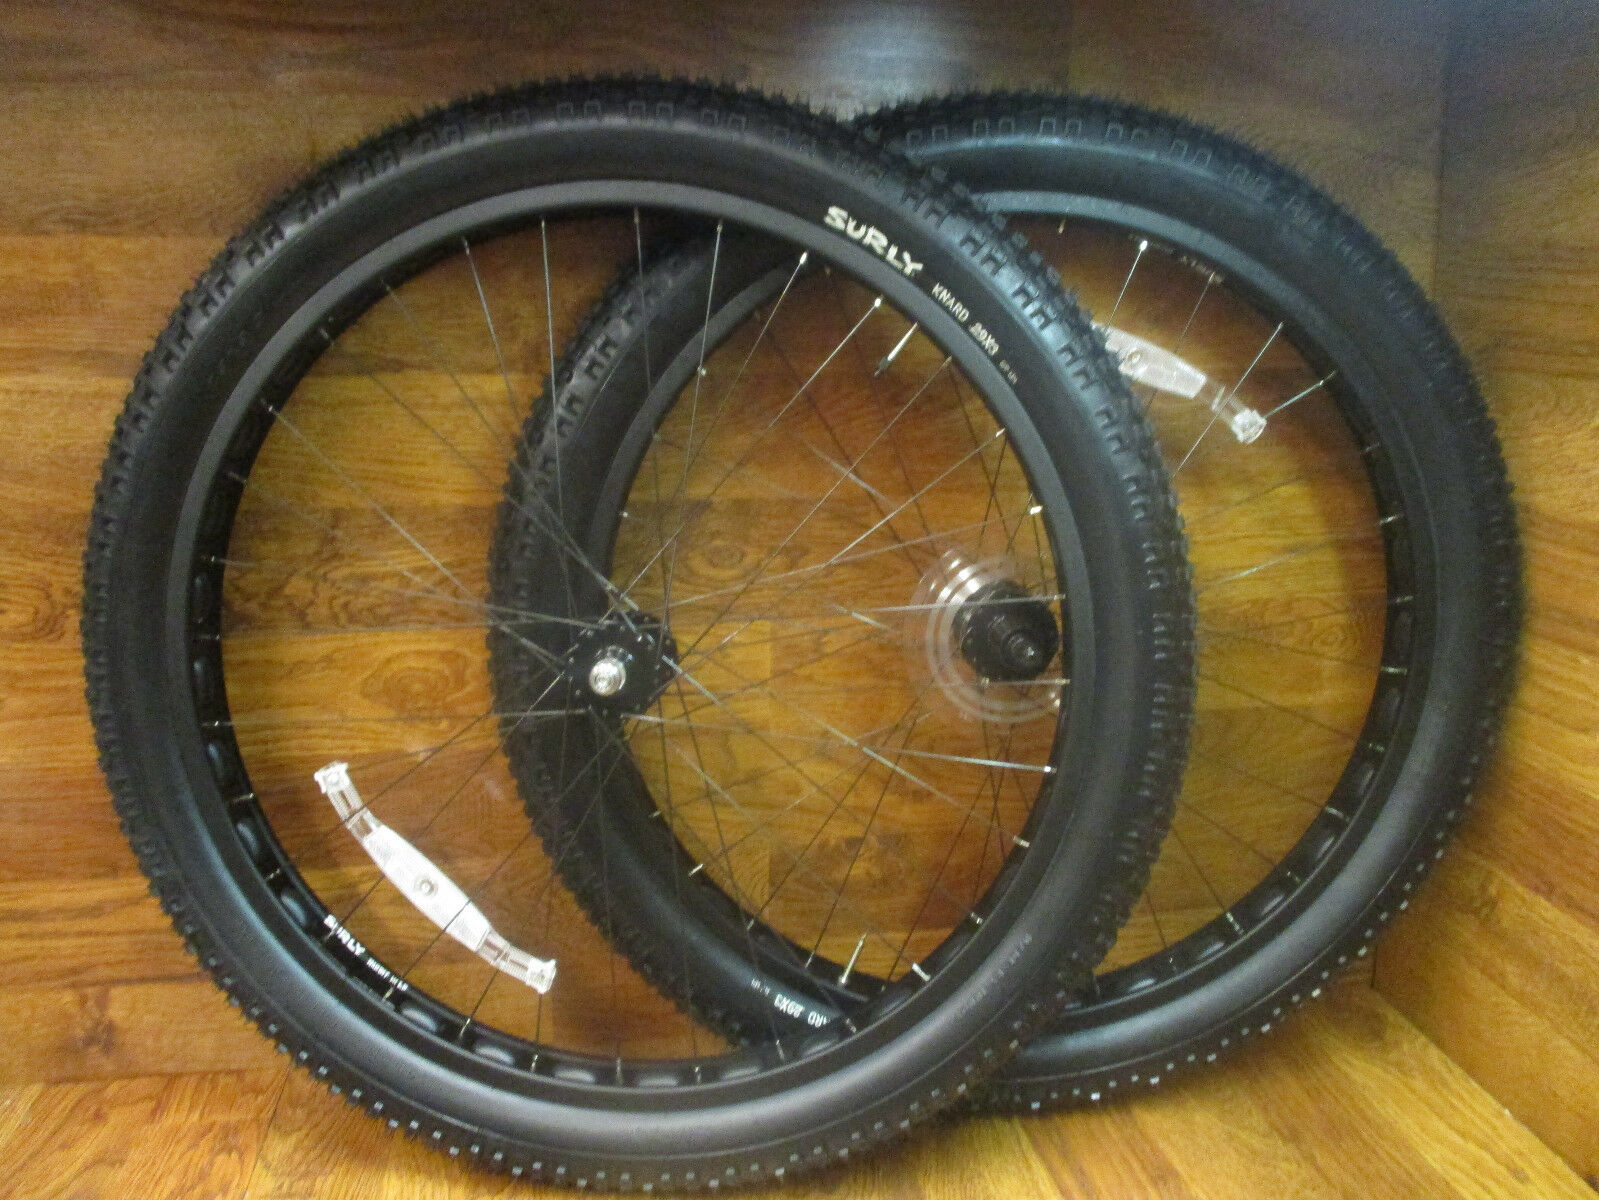 NEW SURLY MID  FAT 29+ RABBIT HOLE 10 SPEED WHEEL SET & SURLY KINARD 29X3 TIRES  hastened to see